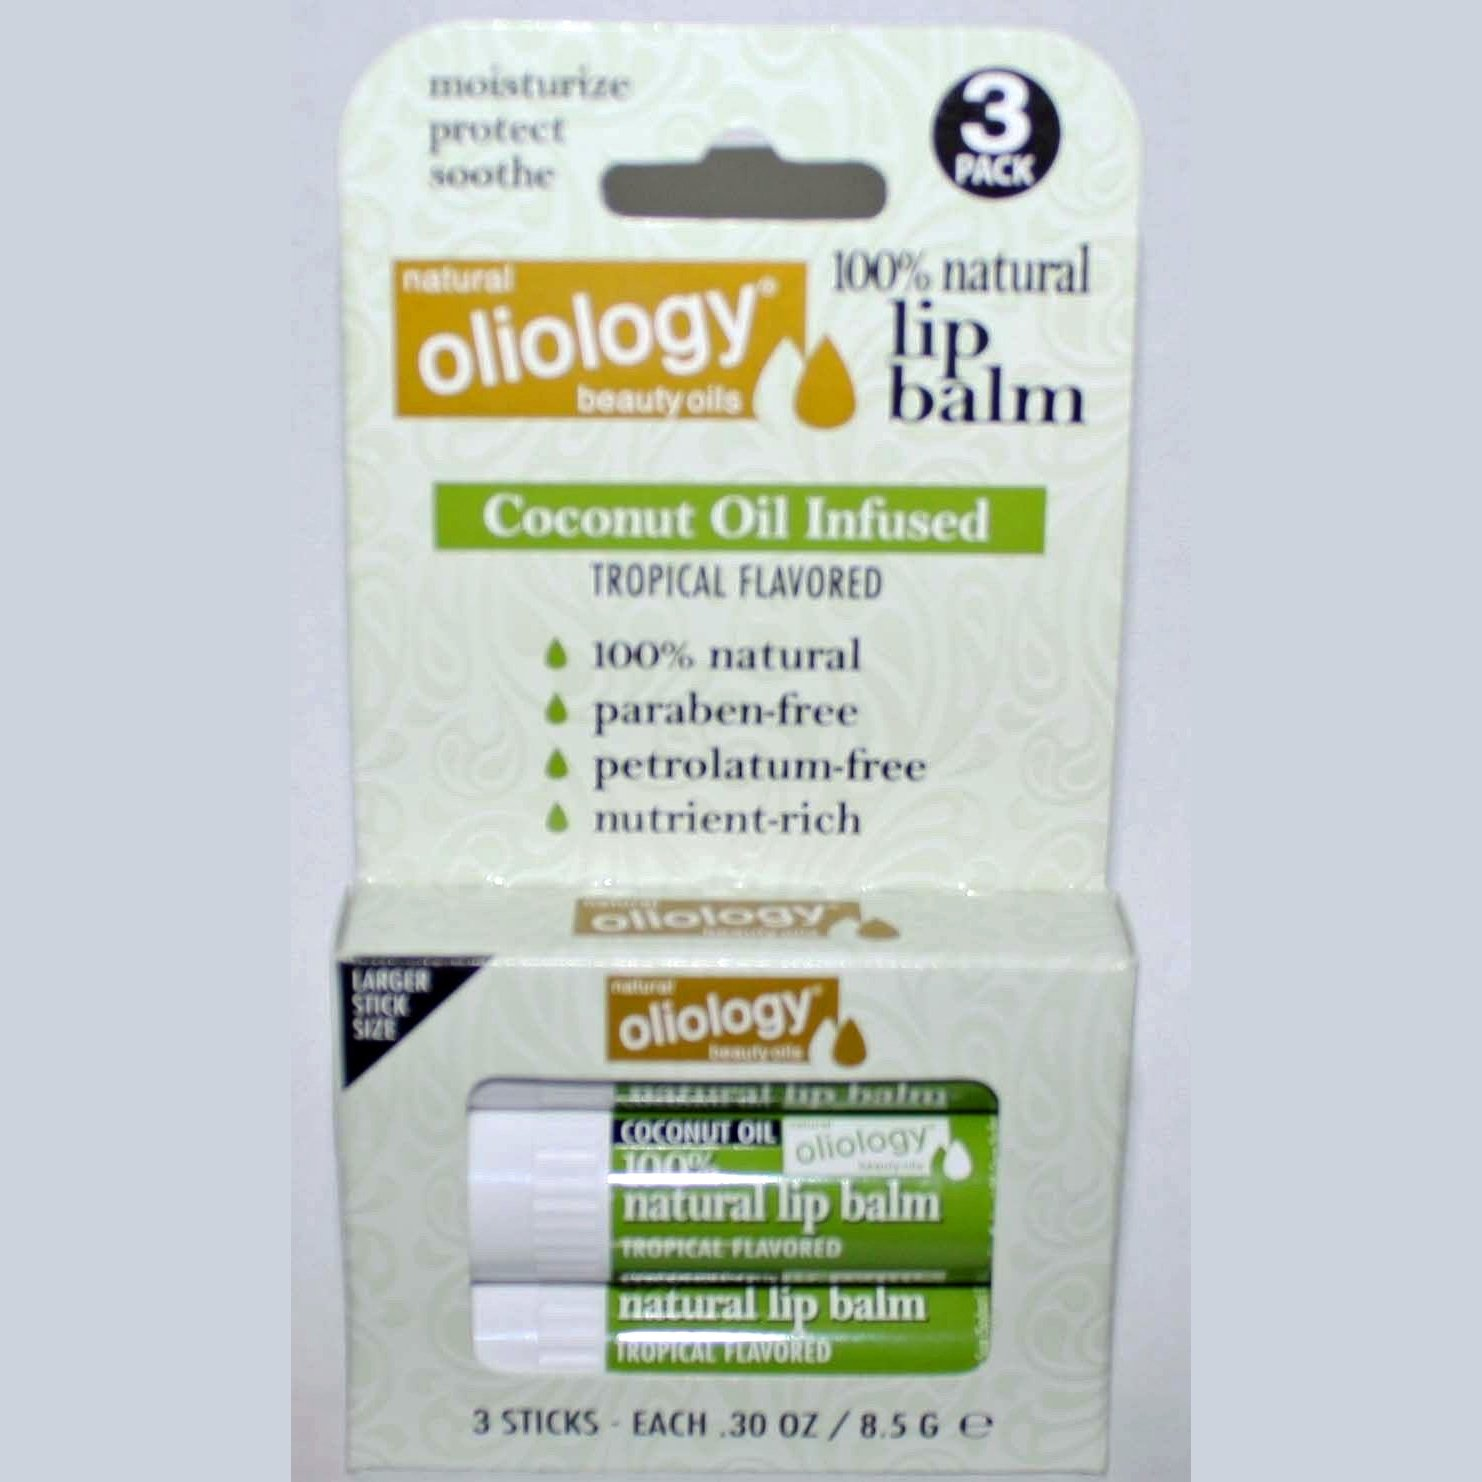 3 Pack Oliology 100% Natural Lip Balm Coconut Oil Infused/Tropical Flavored